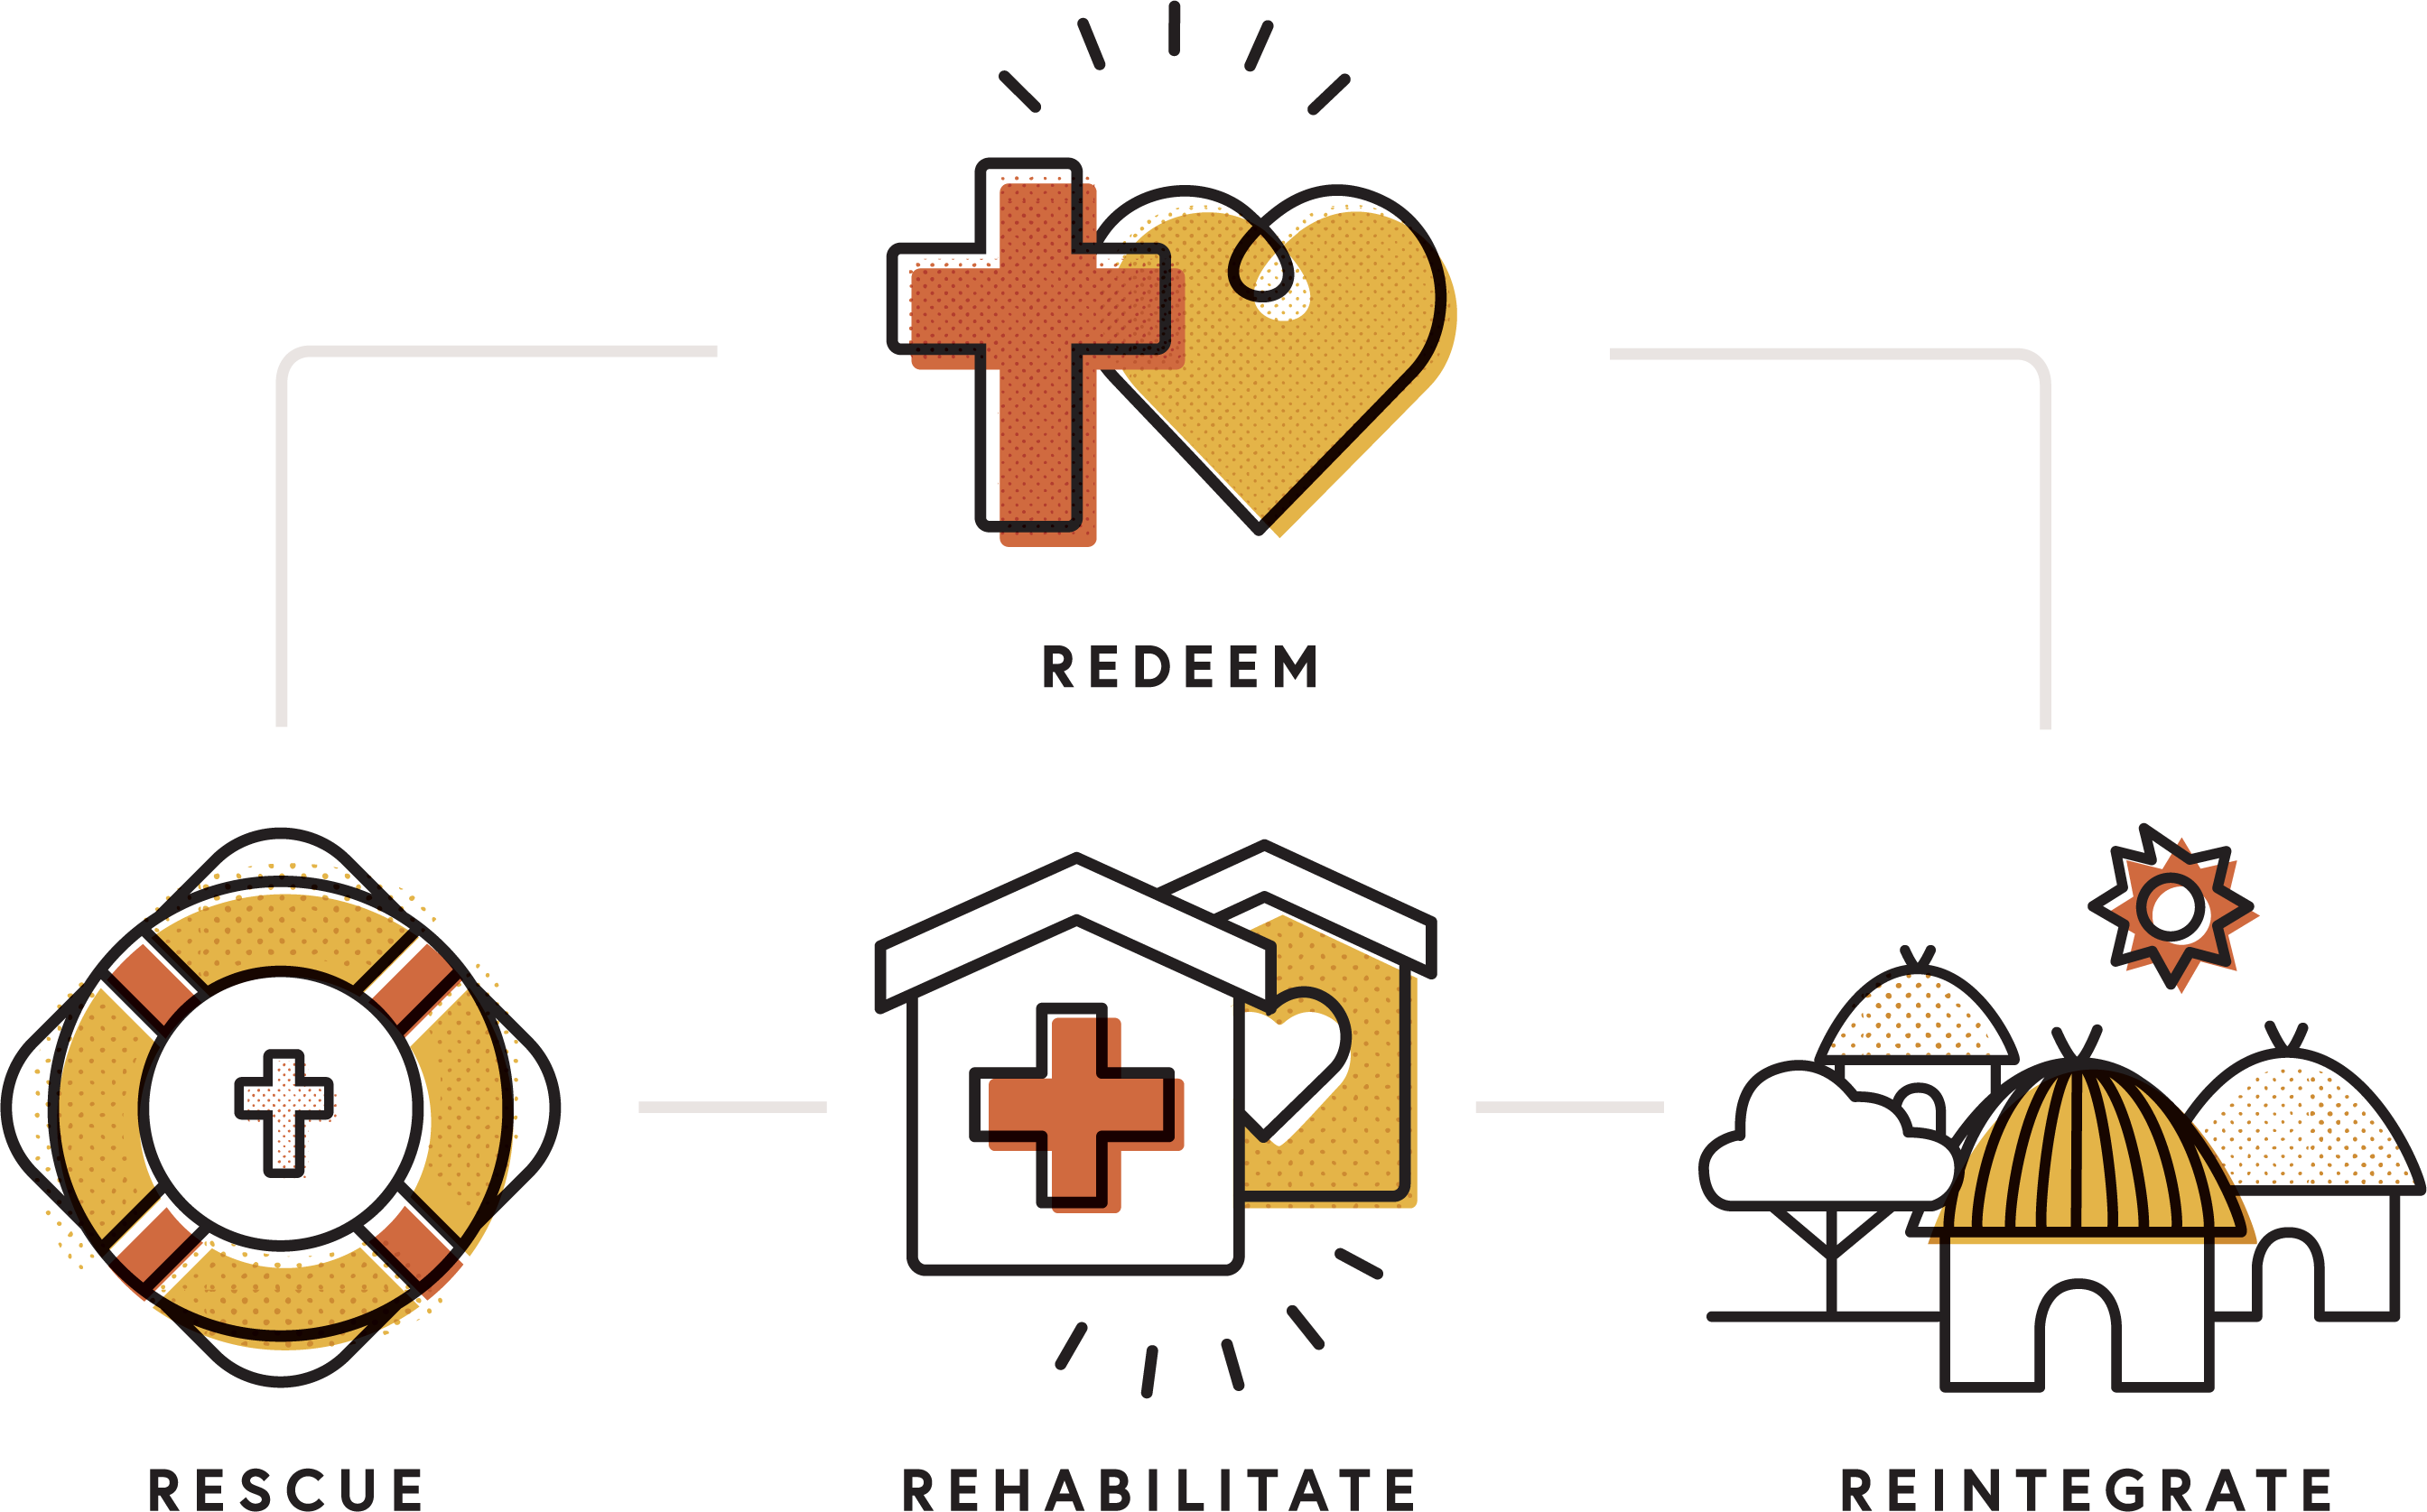 A diagram of the Agape Model of Family Reunification